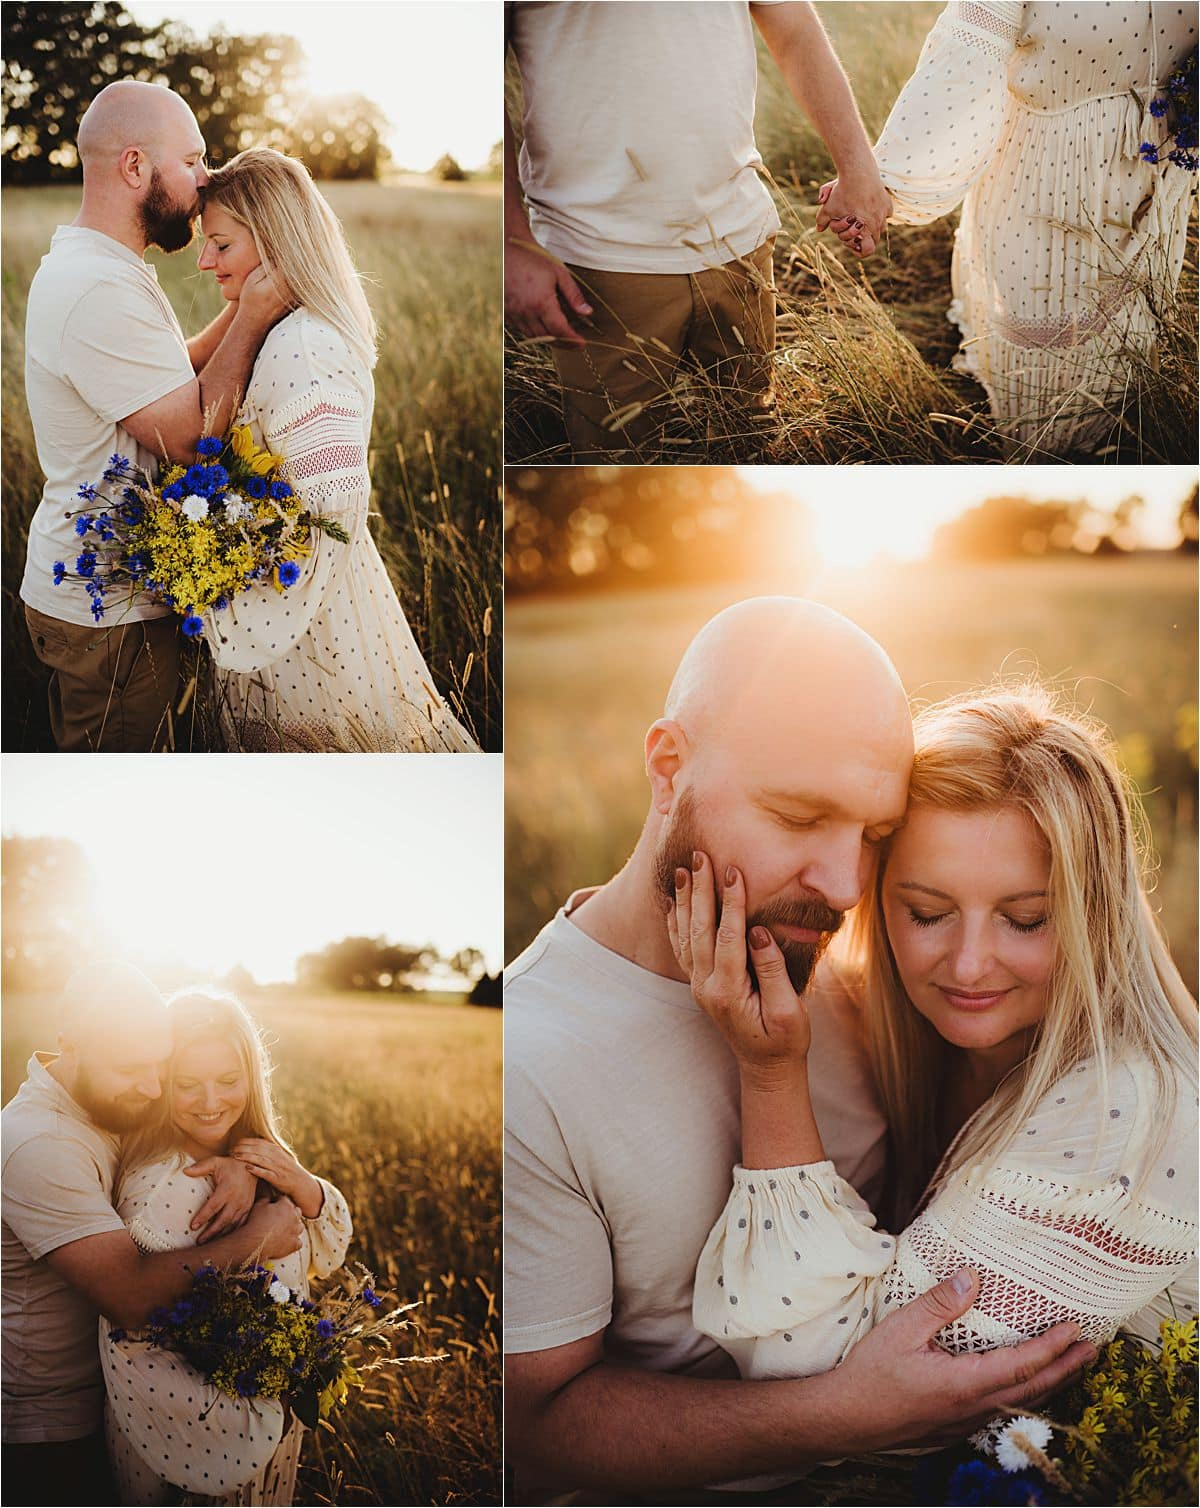 Sunset Portrait Session with Pets Couple Snuggling at Sunset